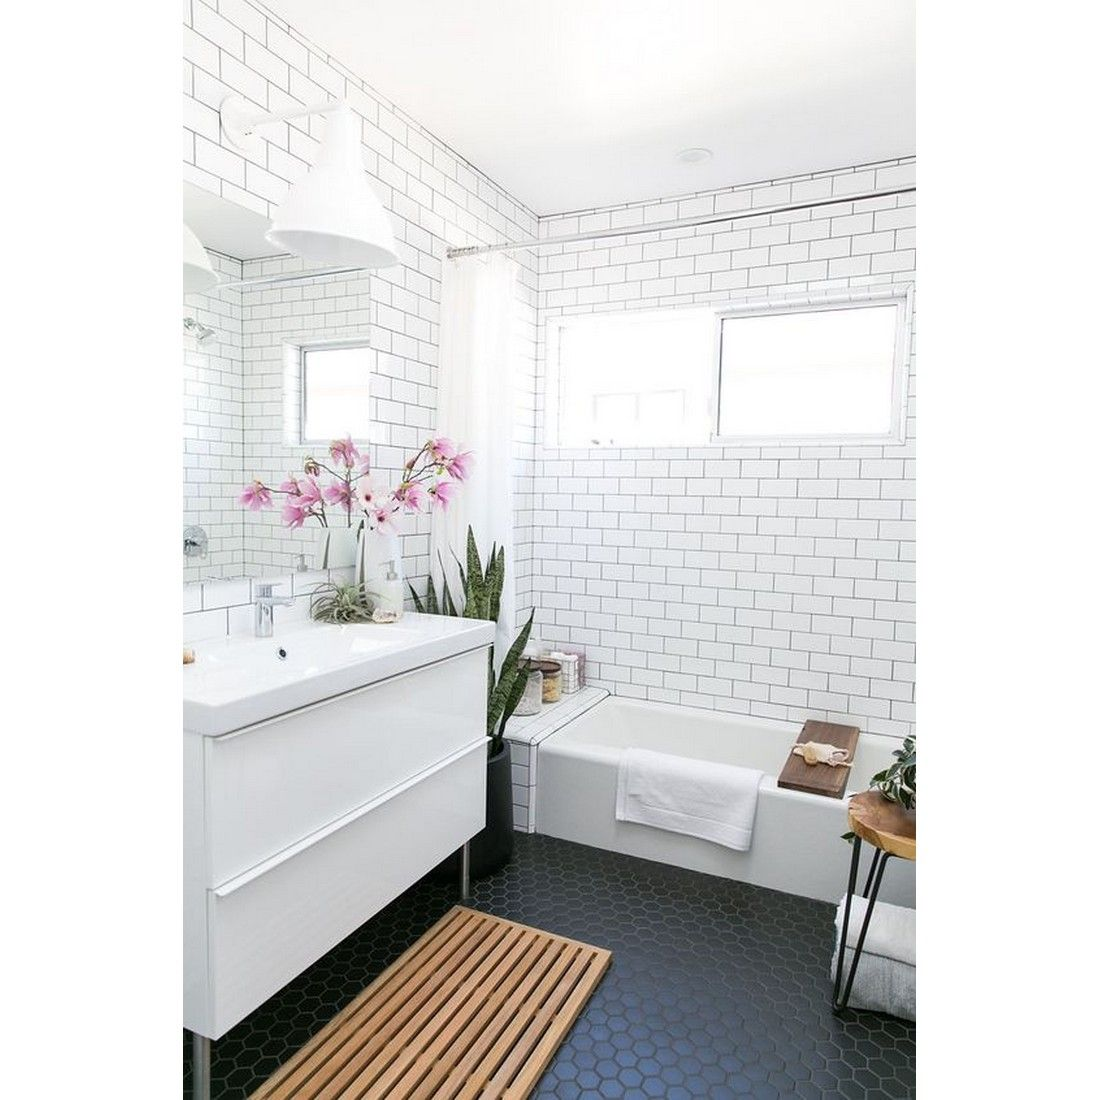 All White Bathroom With Black Penny Tiles For Monochrome Look